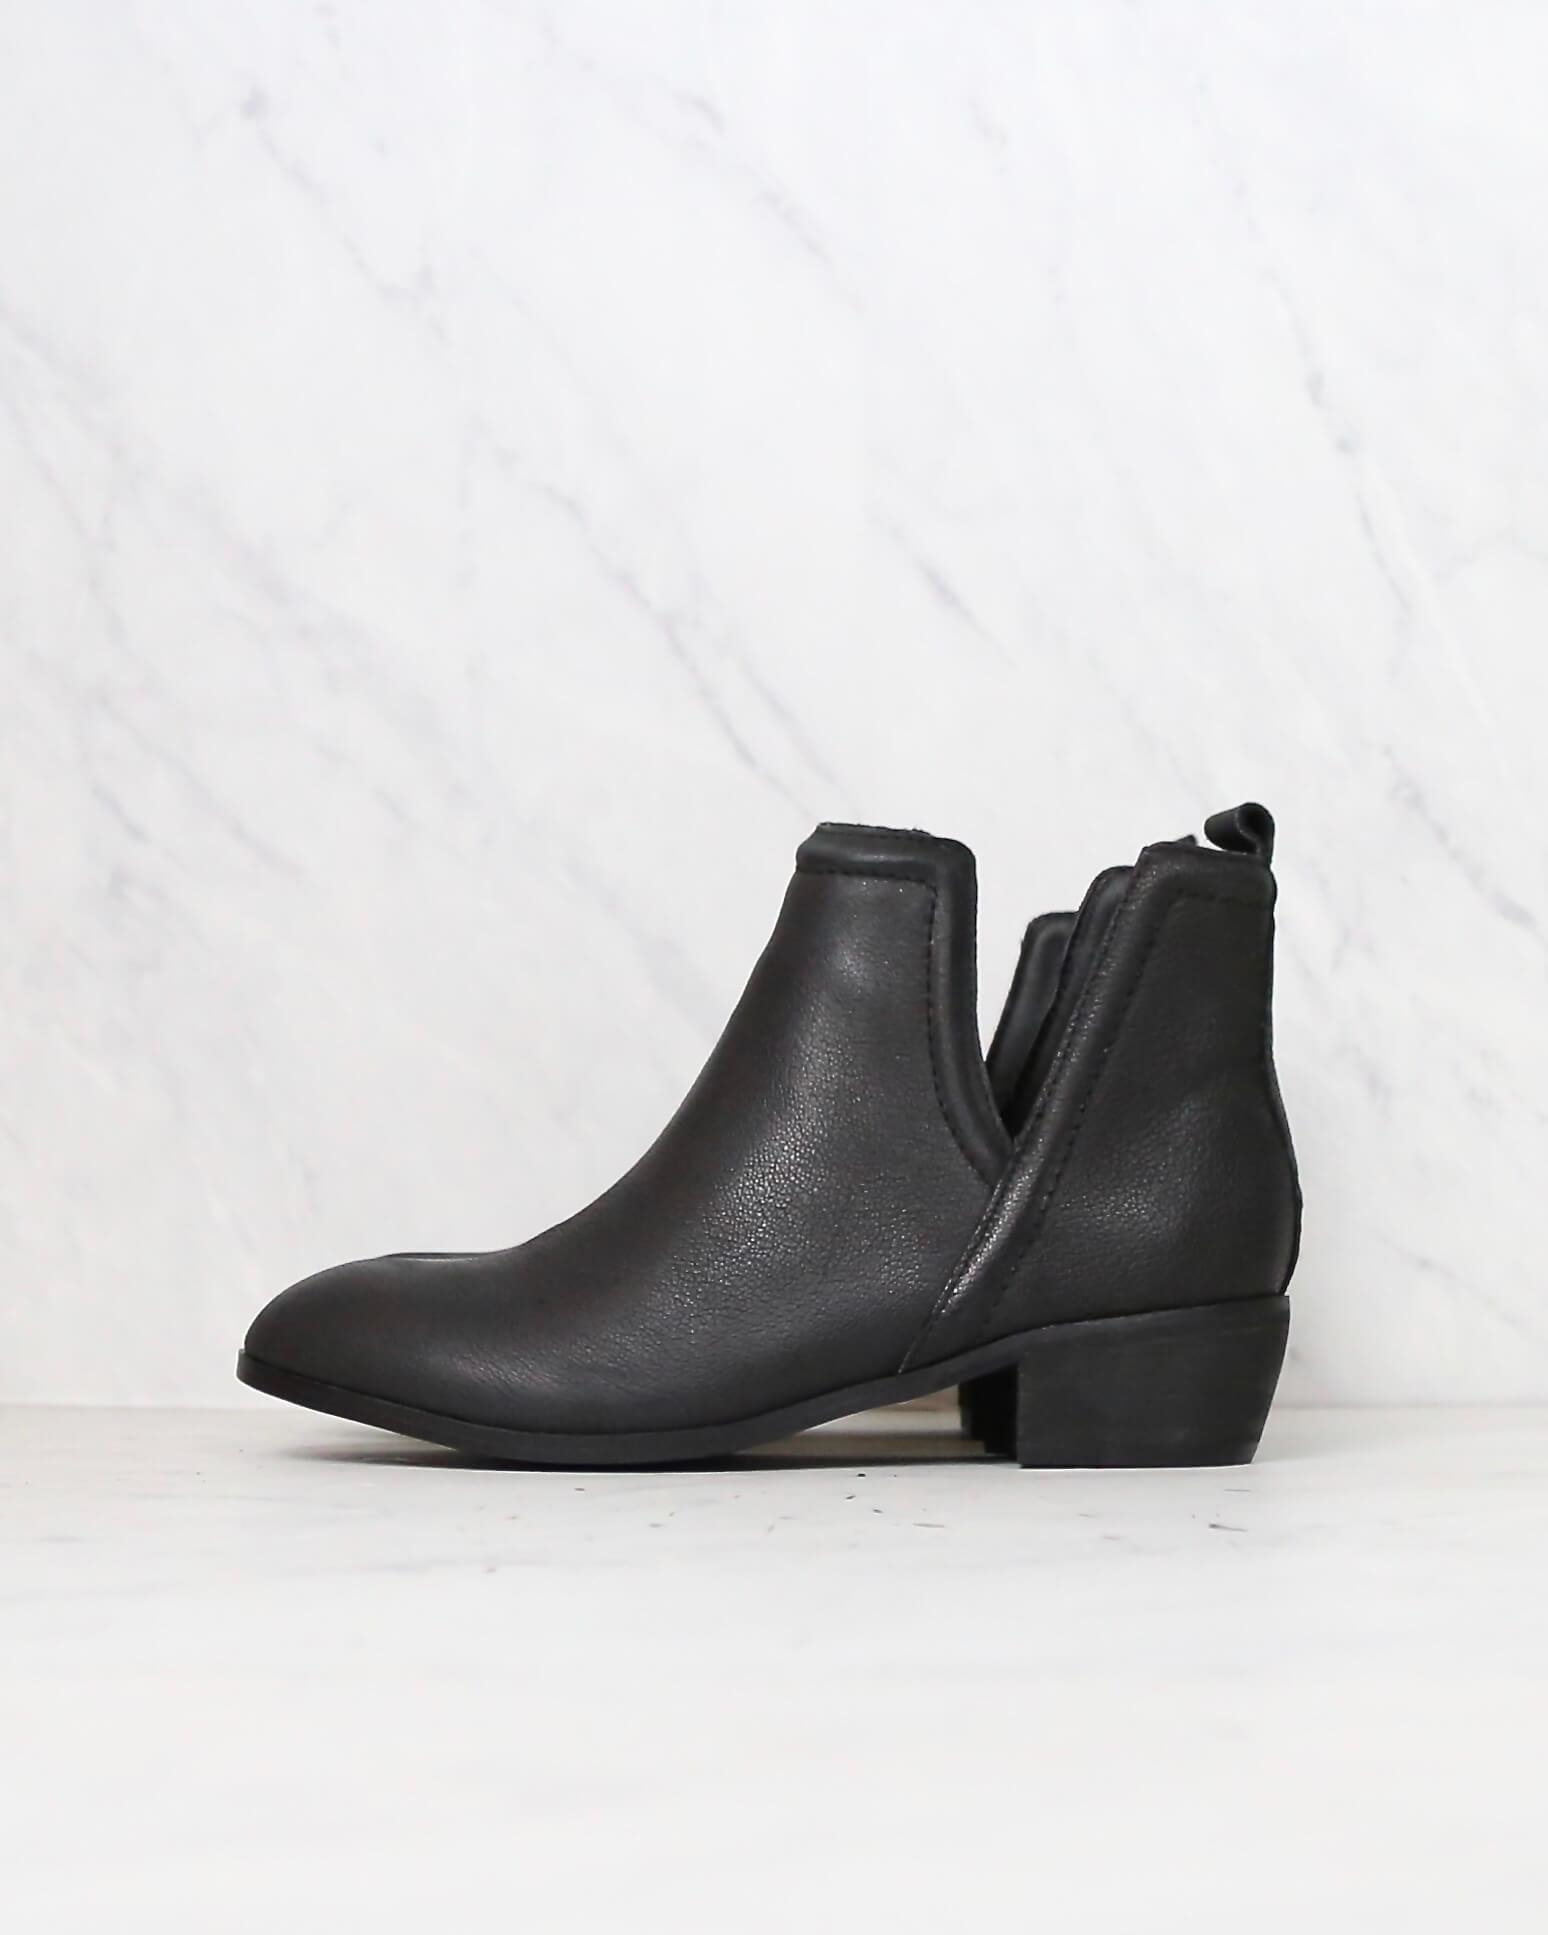 Image of Sbicca - Silvercity Side Slit Leather Chelsea Boots in Black